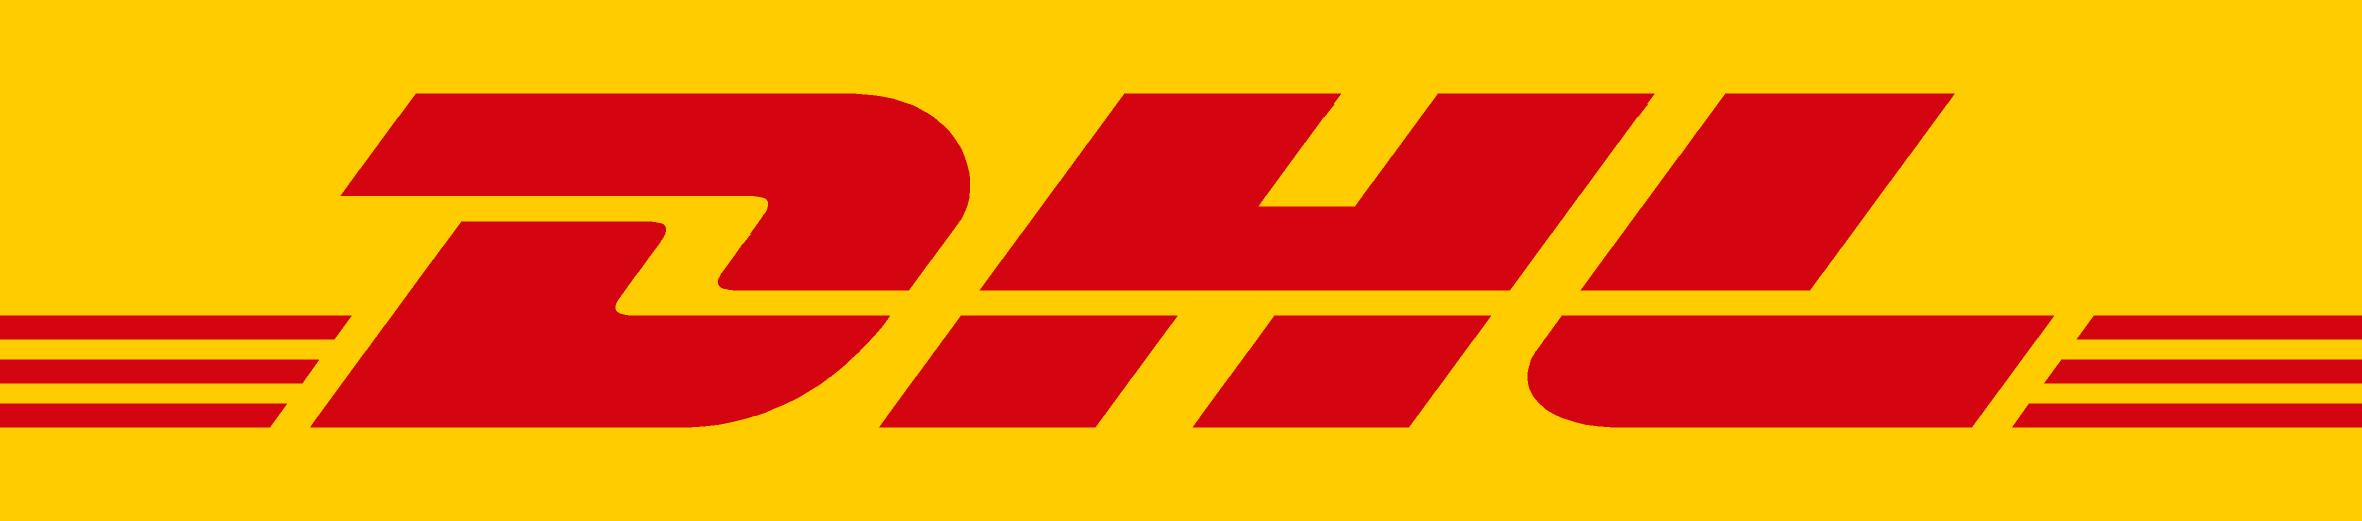 Sub-Saharan Africa improves its state of Globalization – citizens to benefit, says DHL